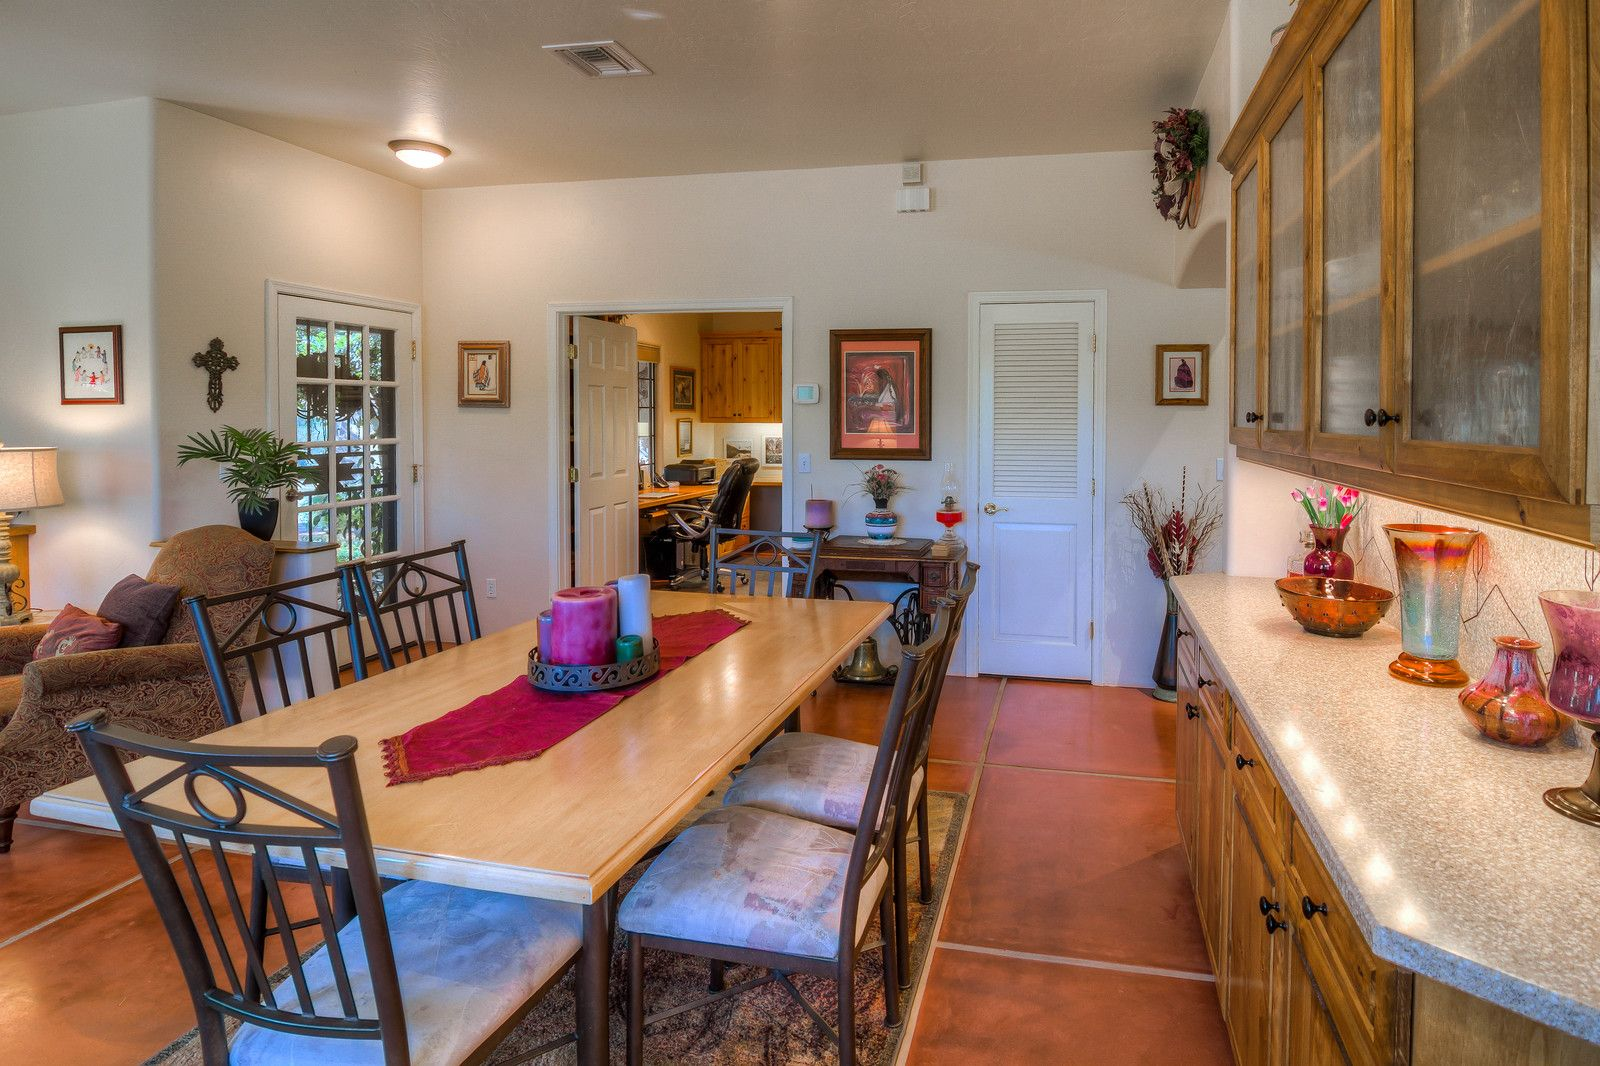 To Learn more about this home for sale at 2050 W Hunter Road, Oro Valley, AZ 85755 contact Tim Rehrmann (520) 406-1060